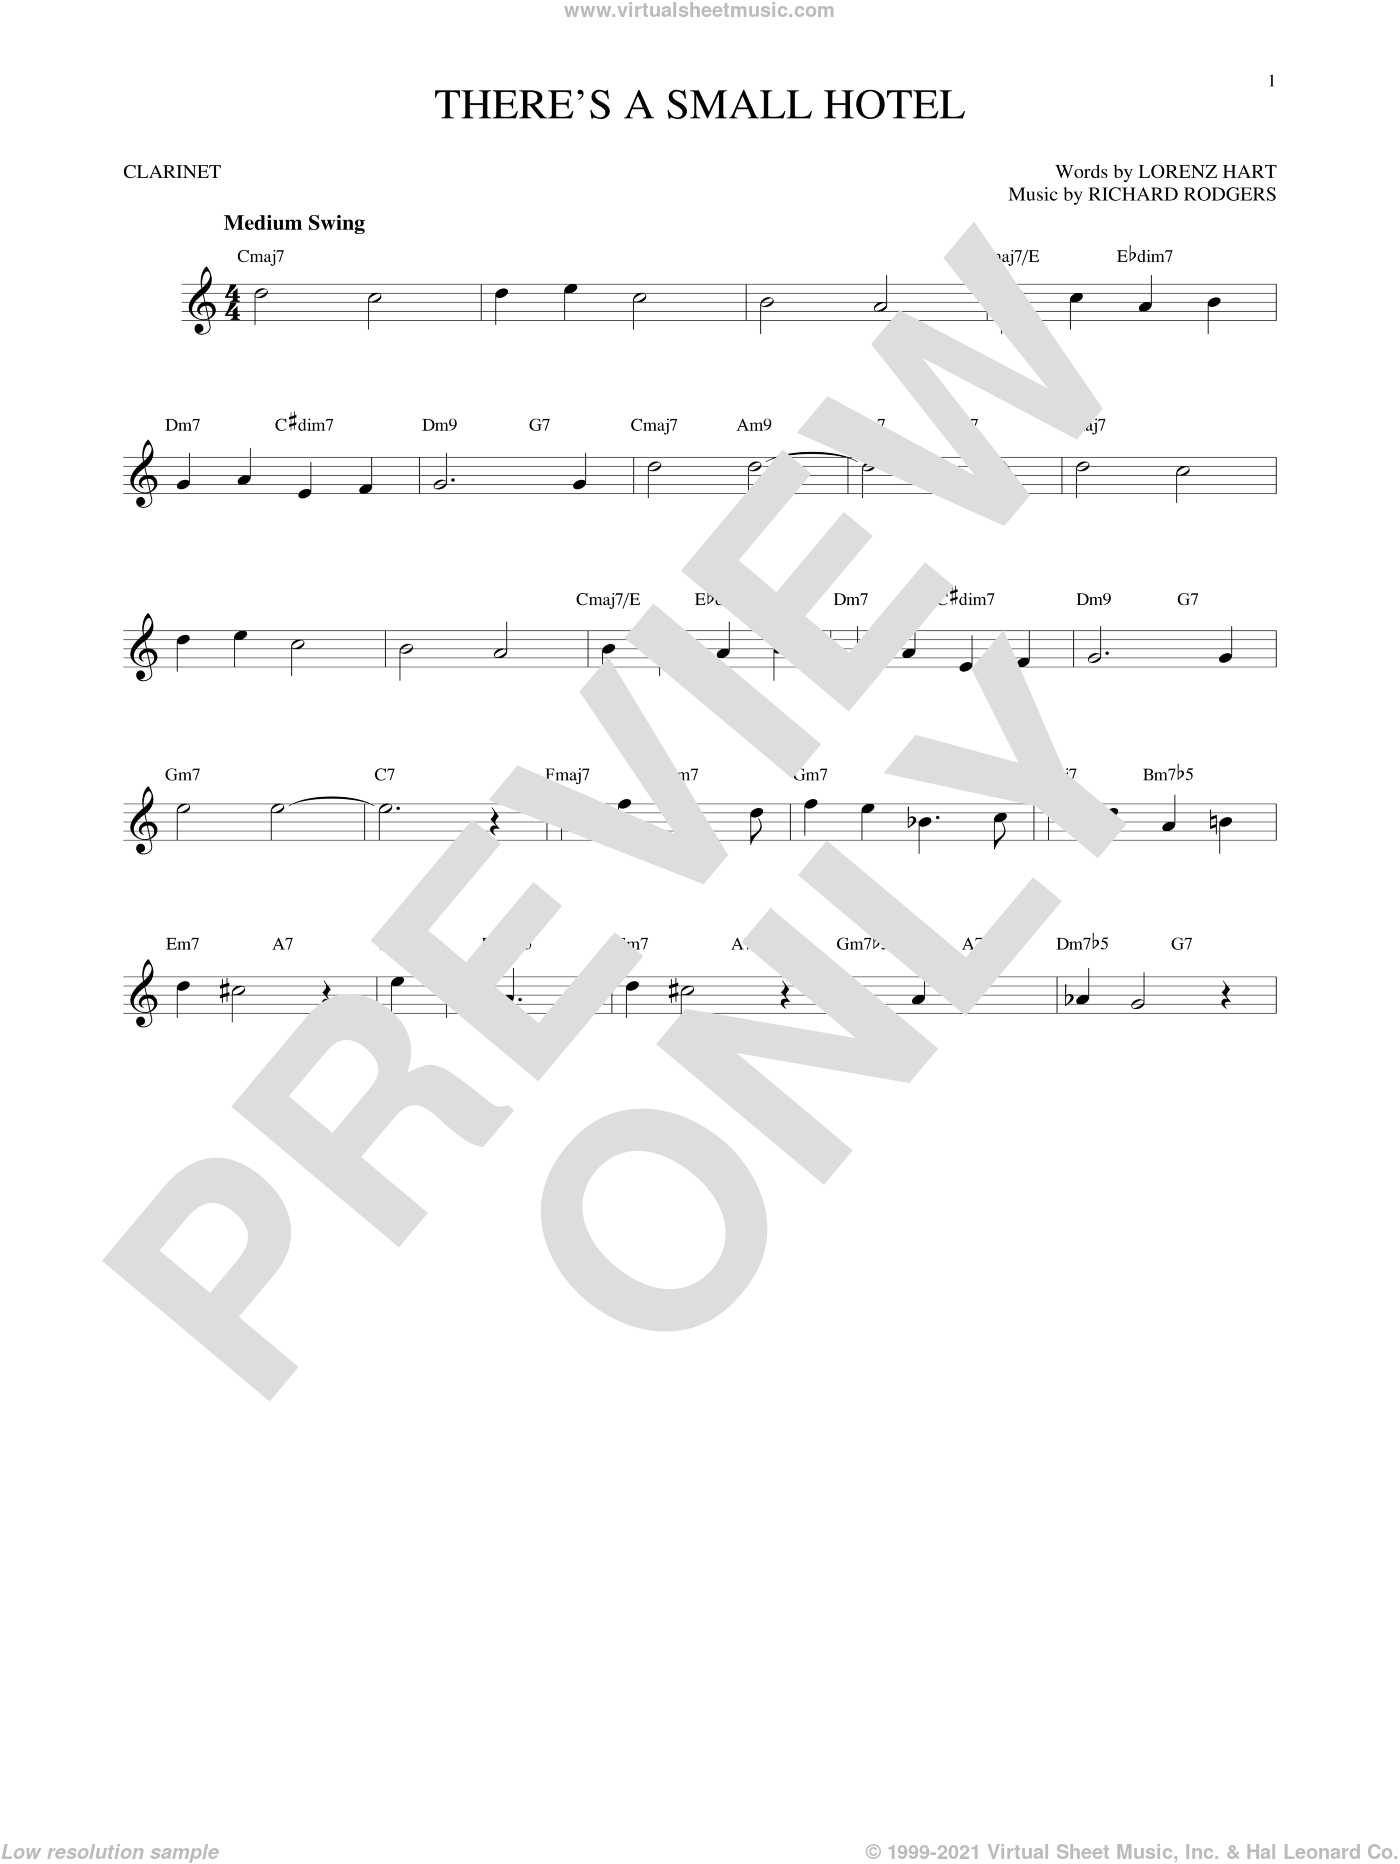 There's A Small Hotel sheet music for clarinet solo by Rodgers & Hart, Charlie Byrd, Ruby Braff, Sammy Davis, Jr., Lorenz Hart and Richard Rodgers, intermediate skill level